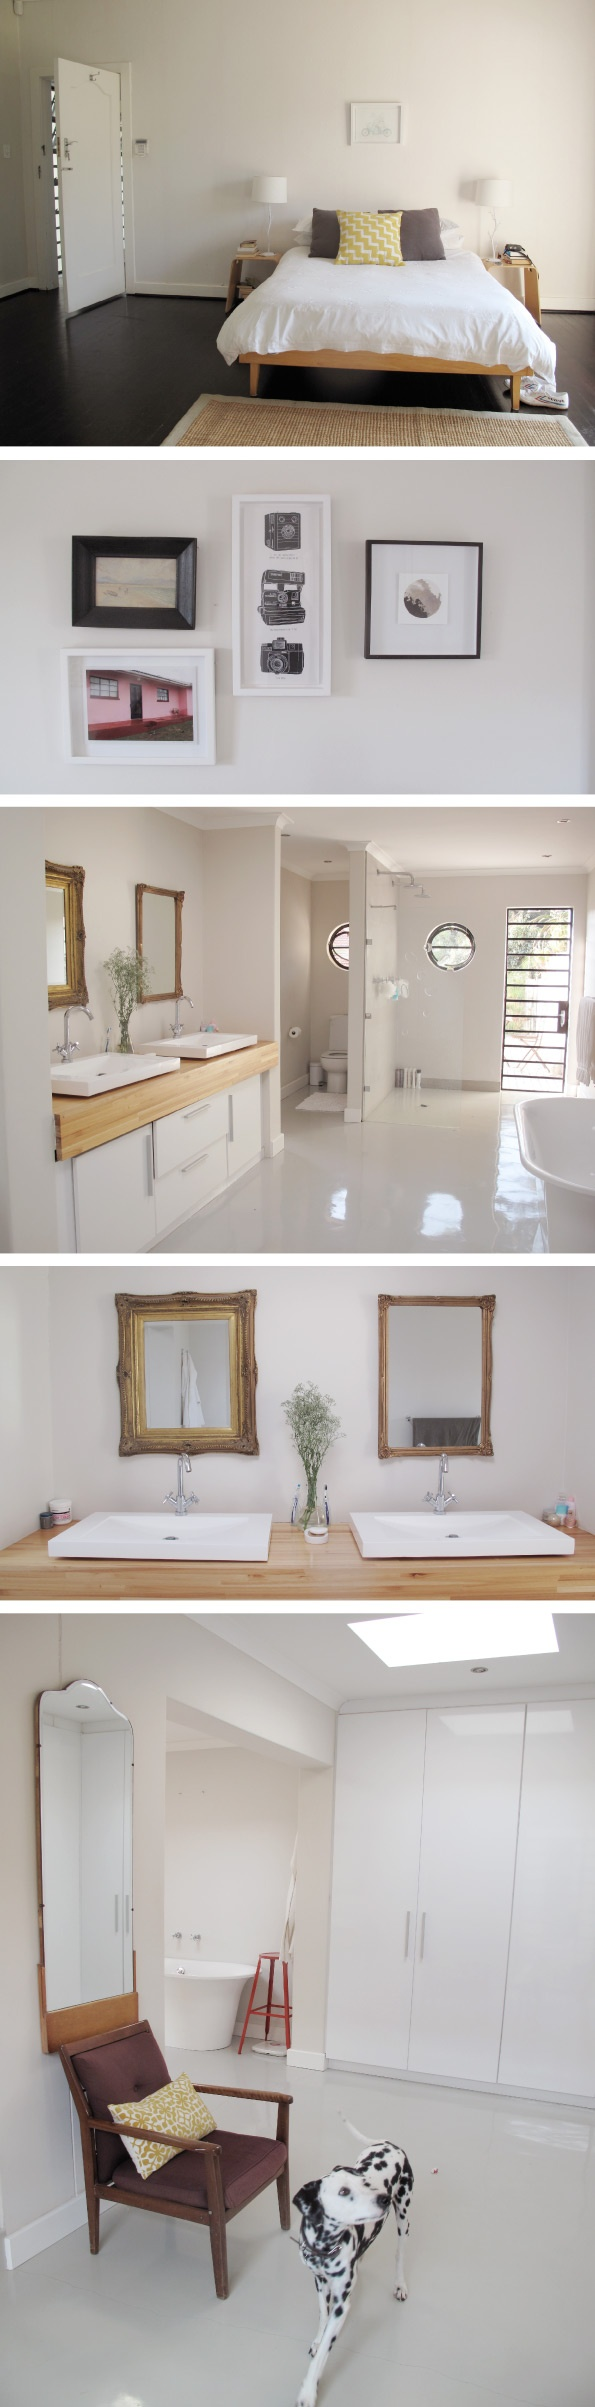 Gina and Bruce Anderson's home photographed by @Angie Durrant Batis, found via Lucky Pony - Love the bathroom!